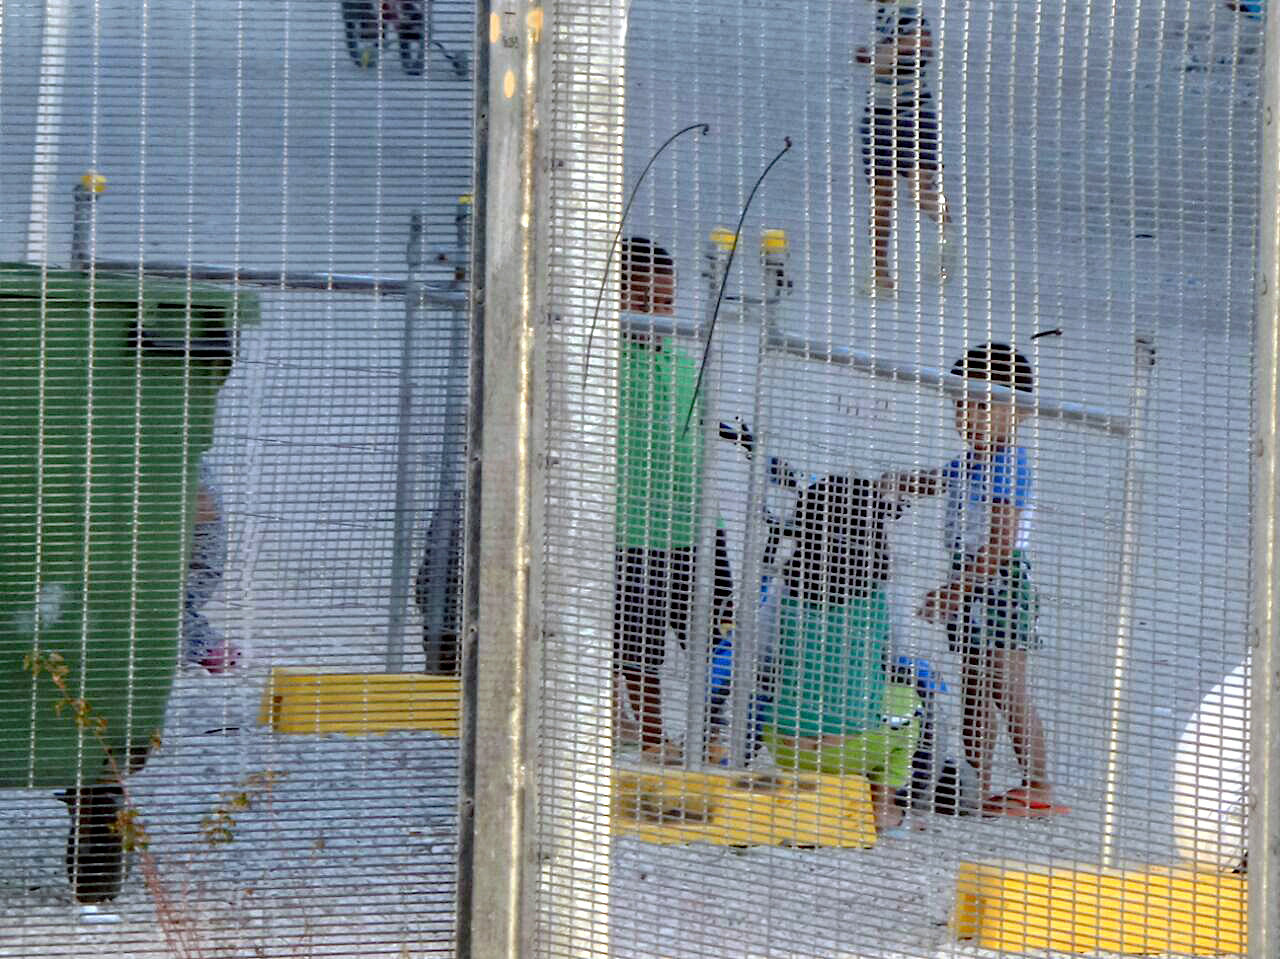 An undated supplied image from Amnesty International claiming to show children playing near a fence at the country's Australian-run detention centre on the Pacific island nation of Nauru